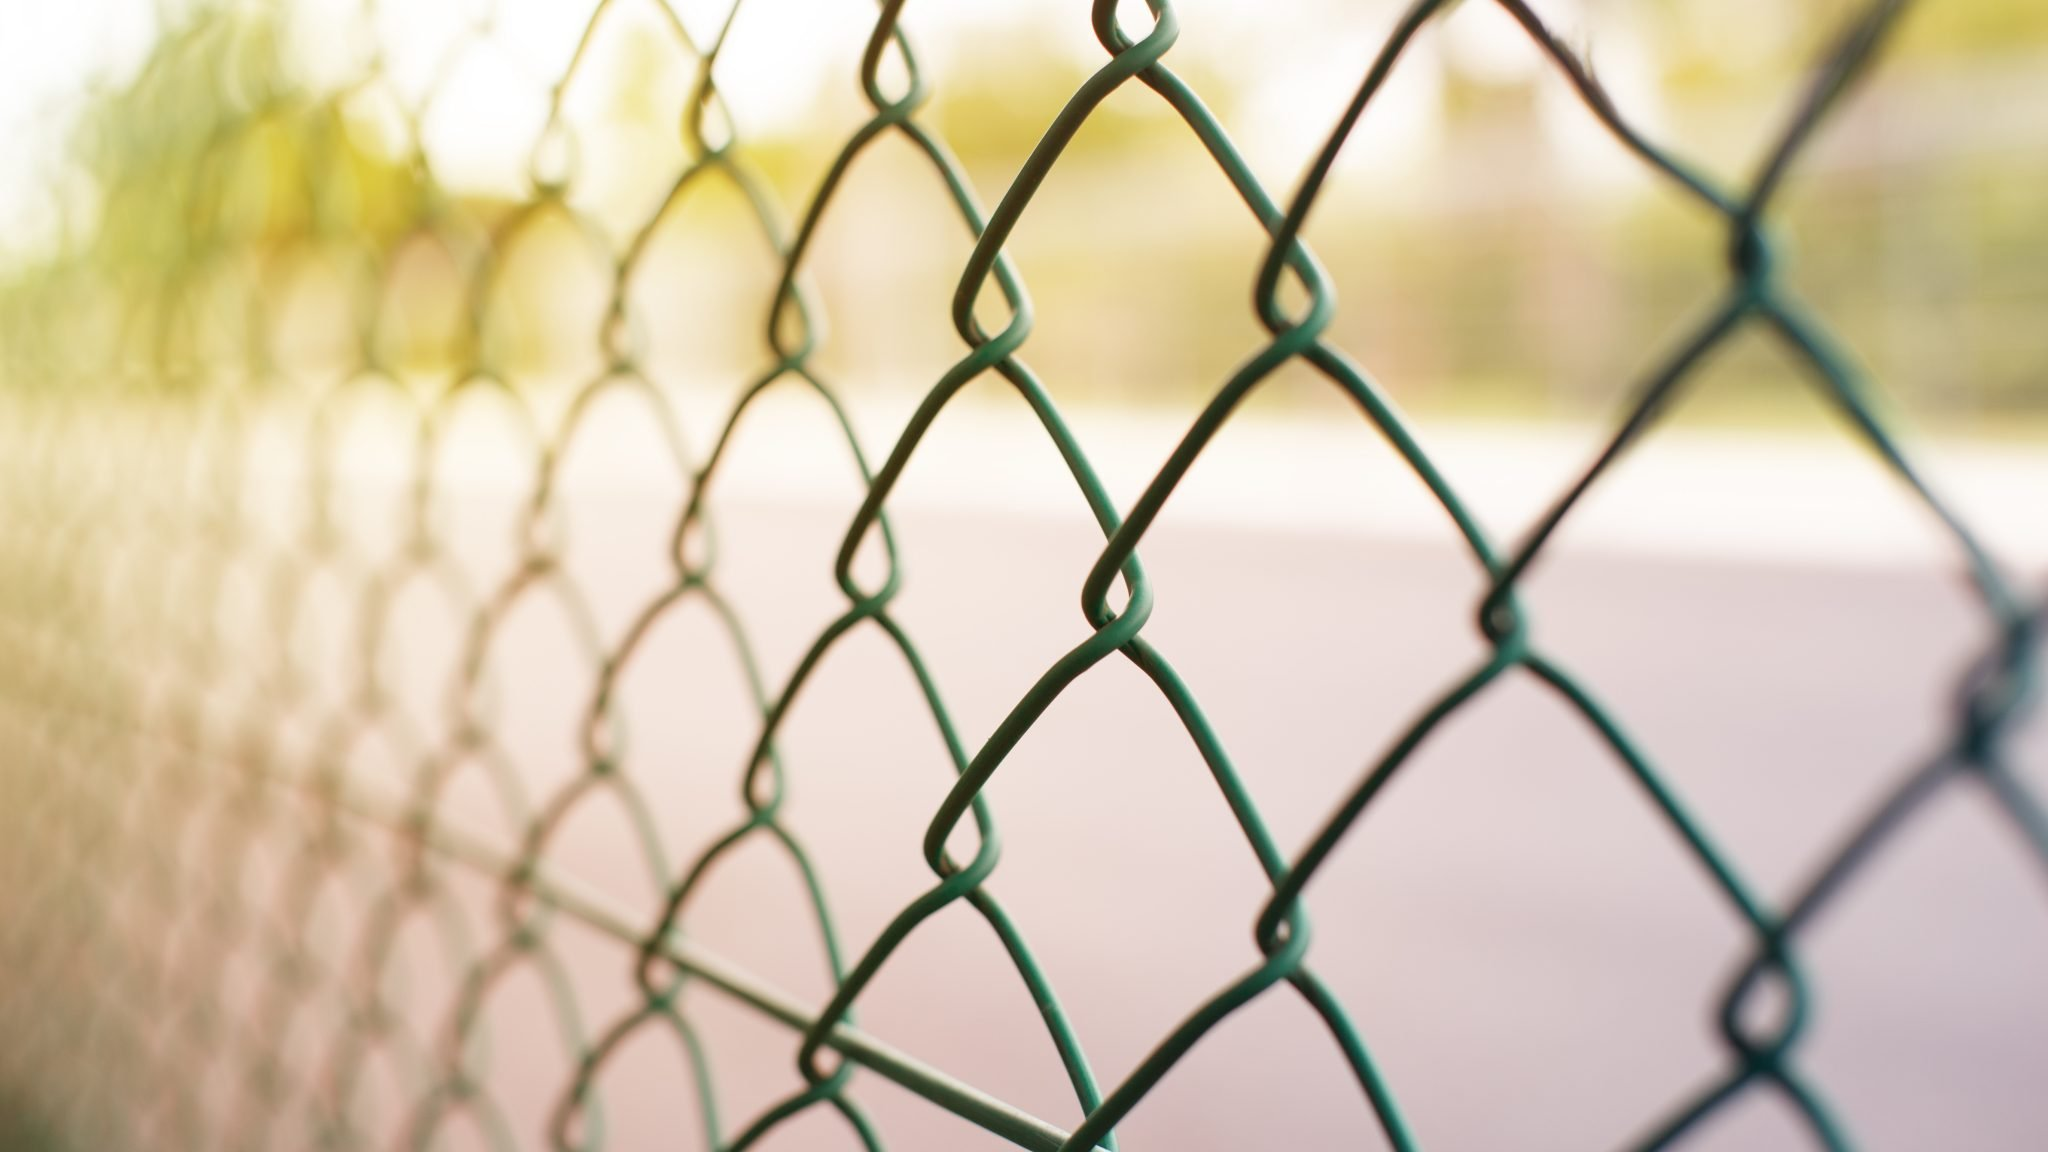 Picture of: 10 Chain Link Fence Privacy Ideas Ways To Improve Your Fence Look